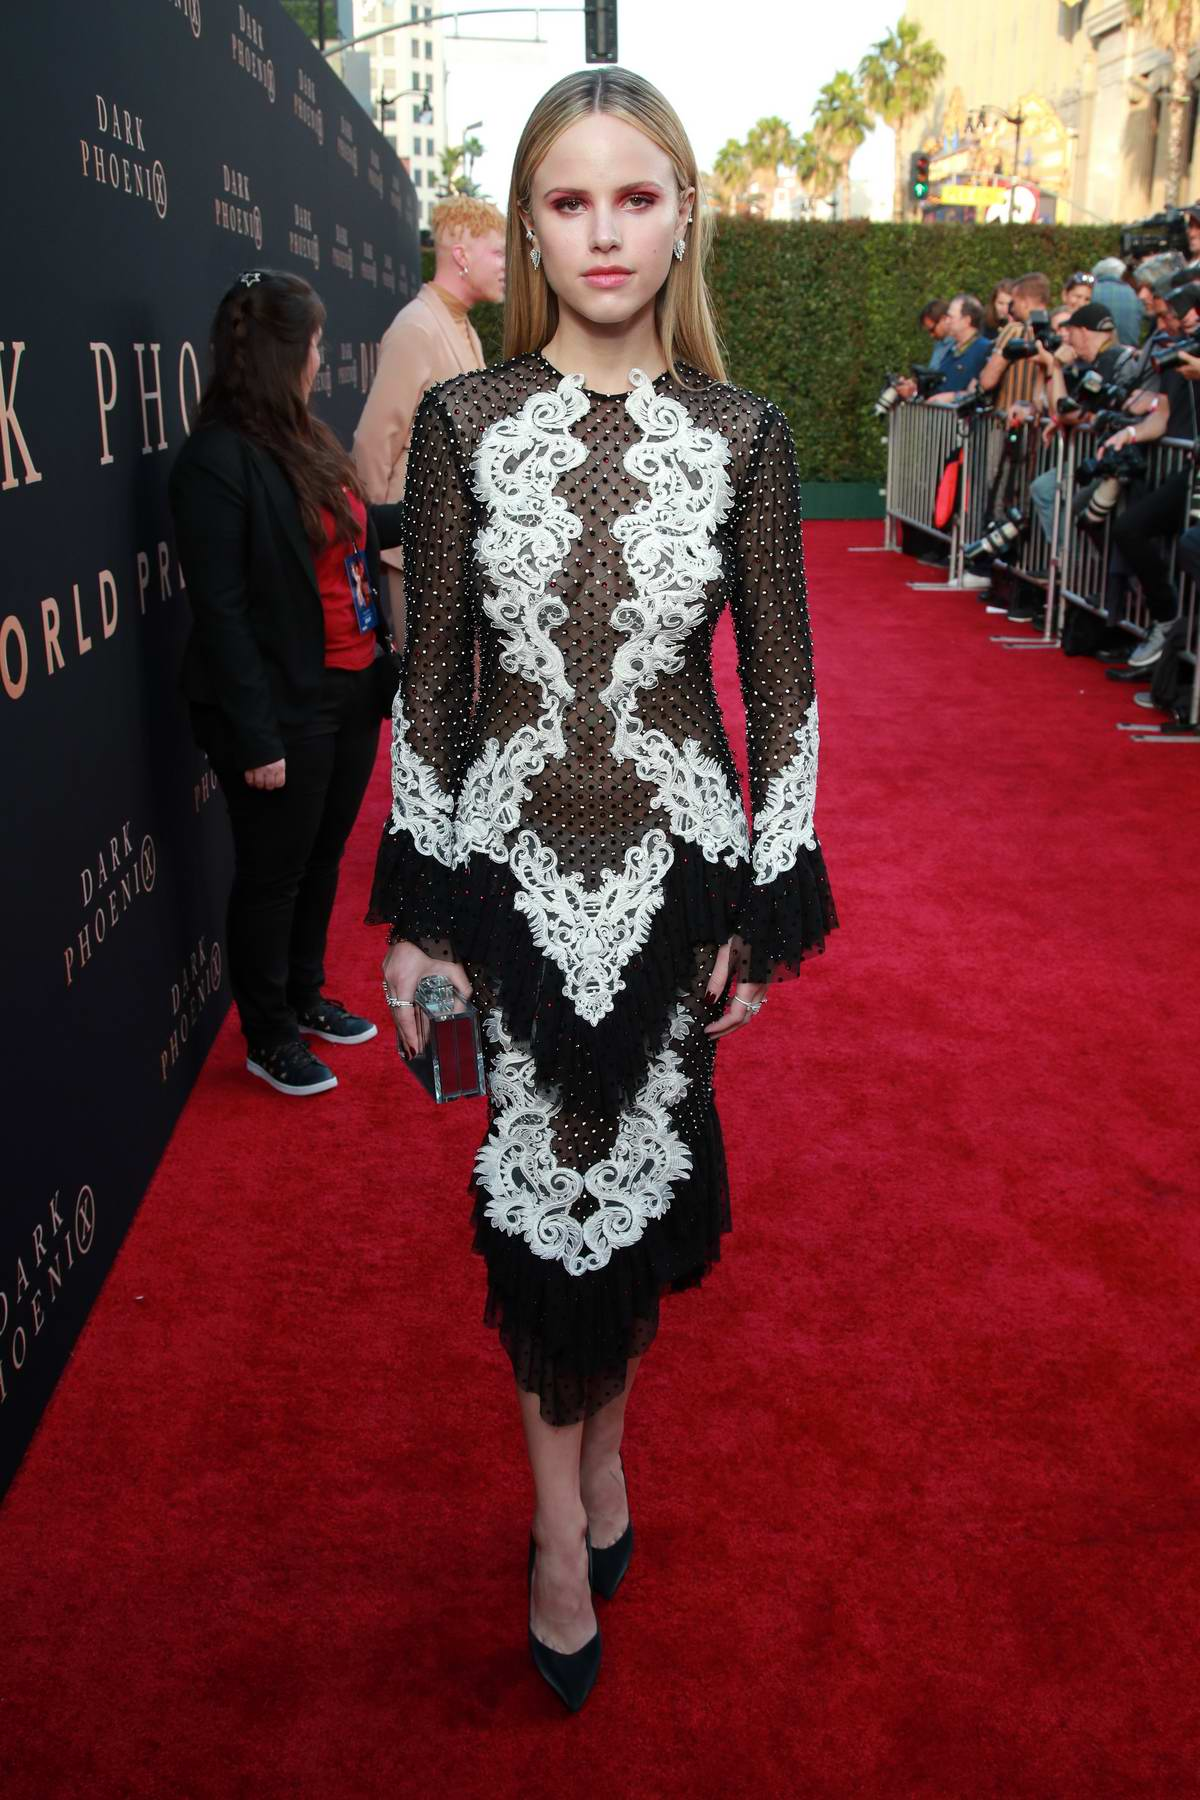 Halston Sage attends 'X-Men: Dark Phoenix' premiere at TCL Chinese Theatre in Hollywood, California